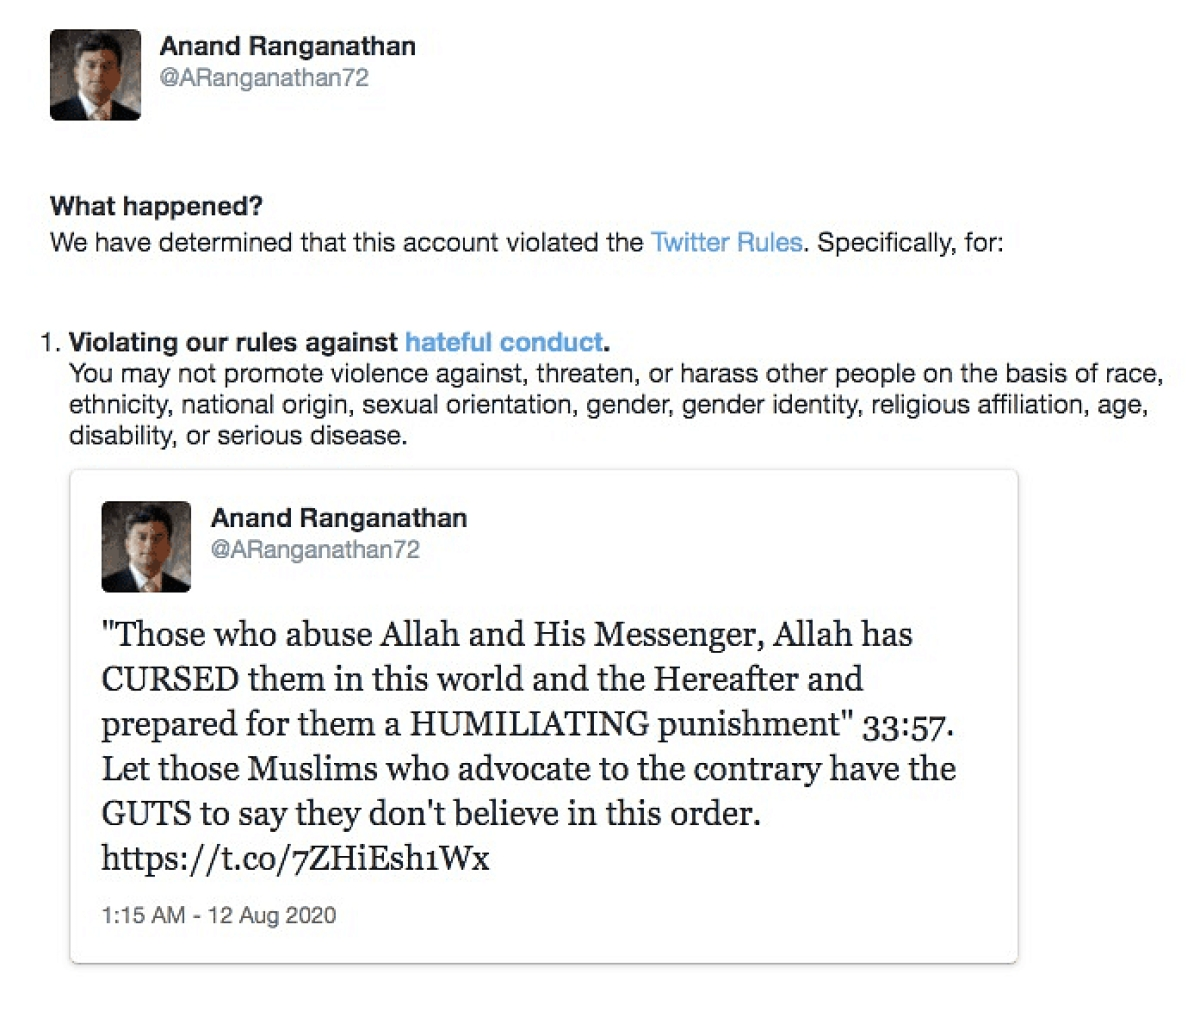 Bengaluru Riots: After 10 days, Twitter apologises to JNU Professor Anand Ranganathan for blocking his account for quoting Quran verse